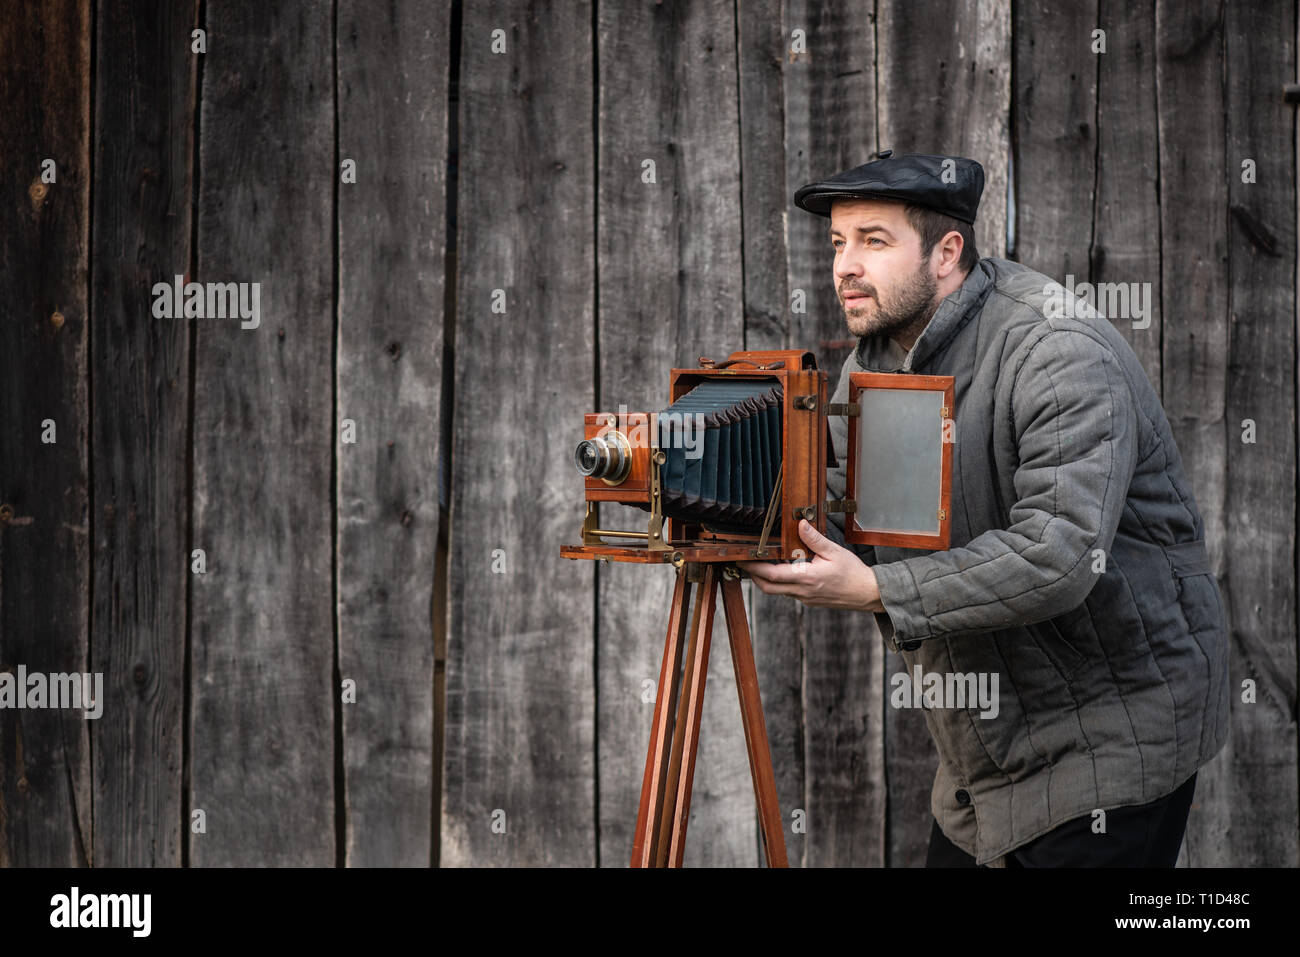 Old fashioned photographer works with large format camera. Idea - photography of the 1930s-1950s - Stock Image